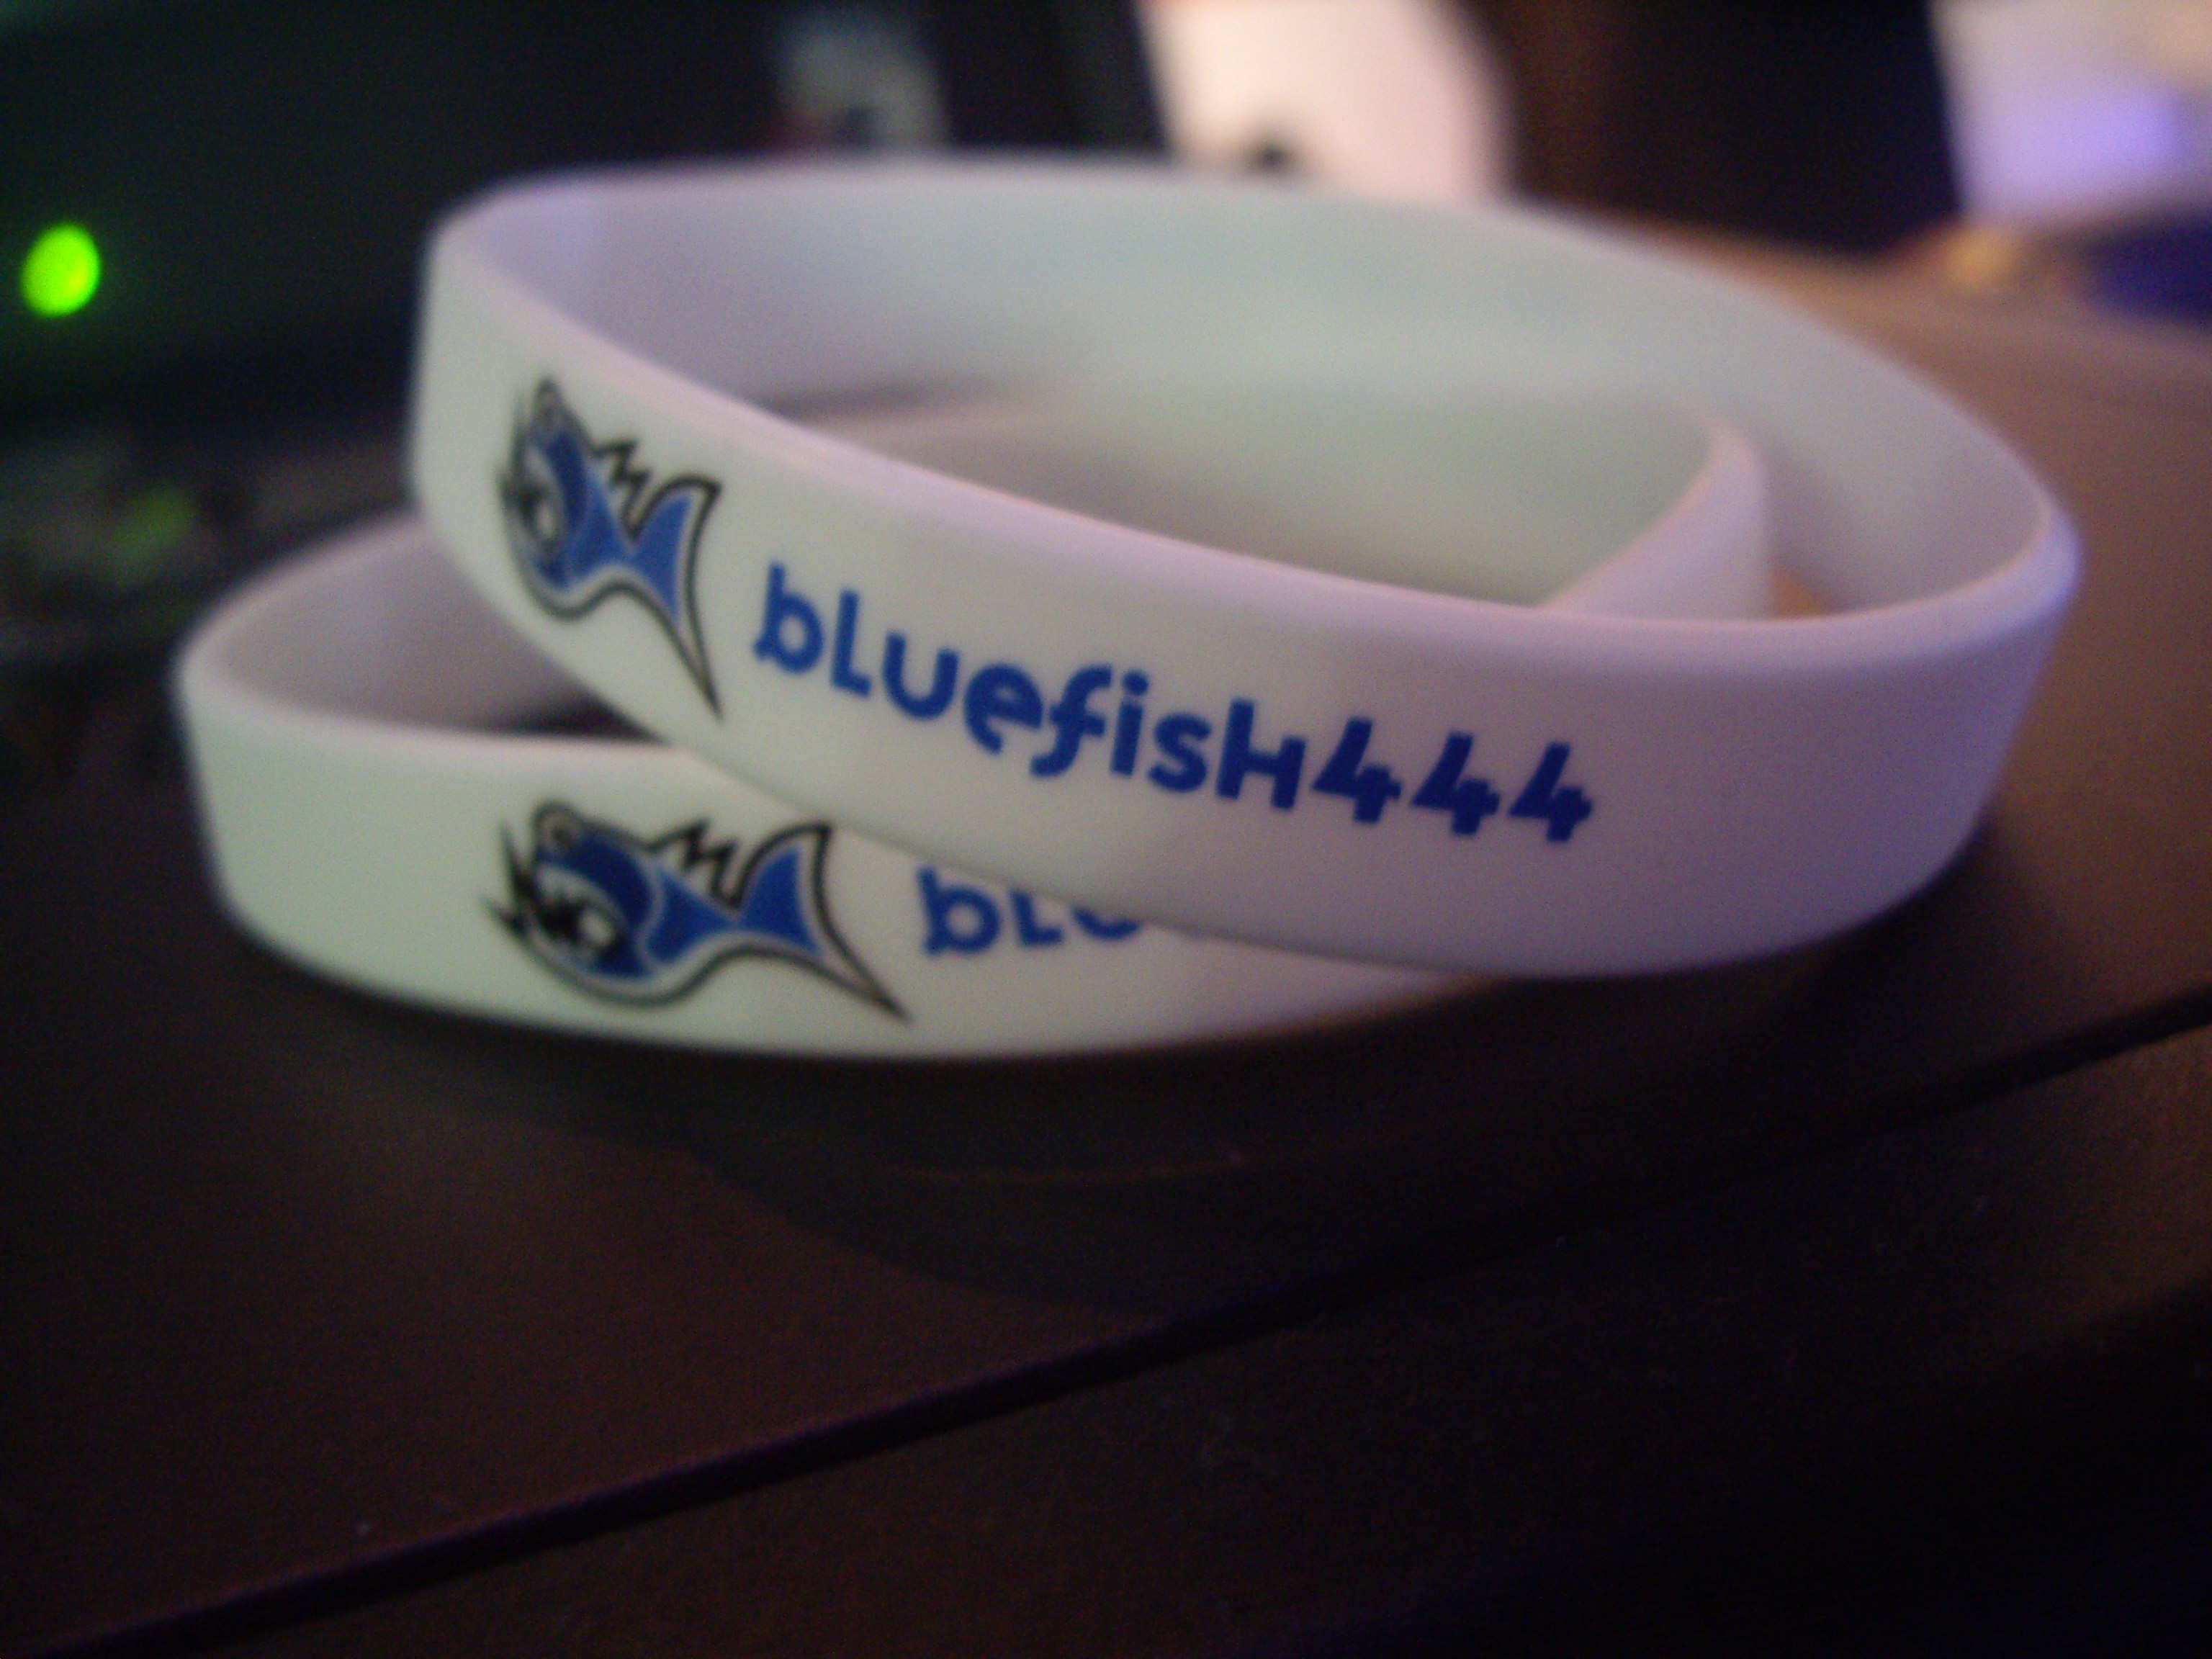 Bluefish444 Wrist Bands